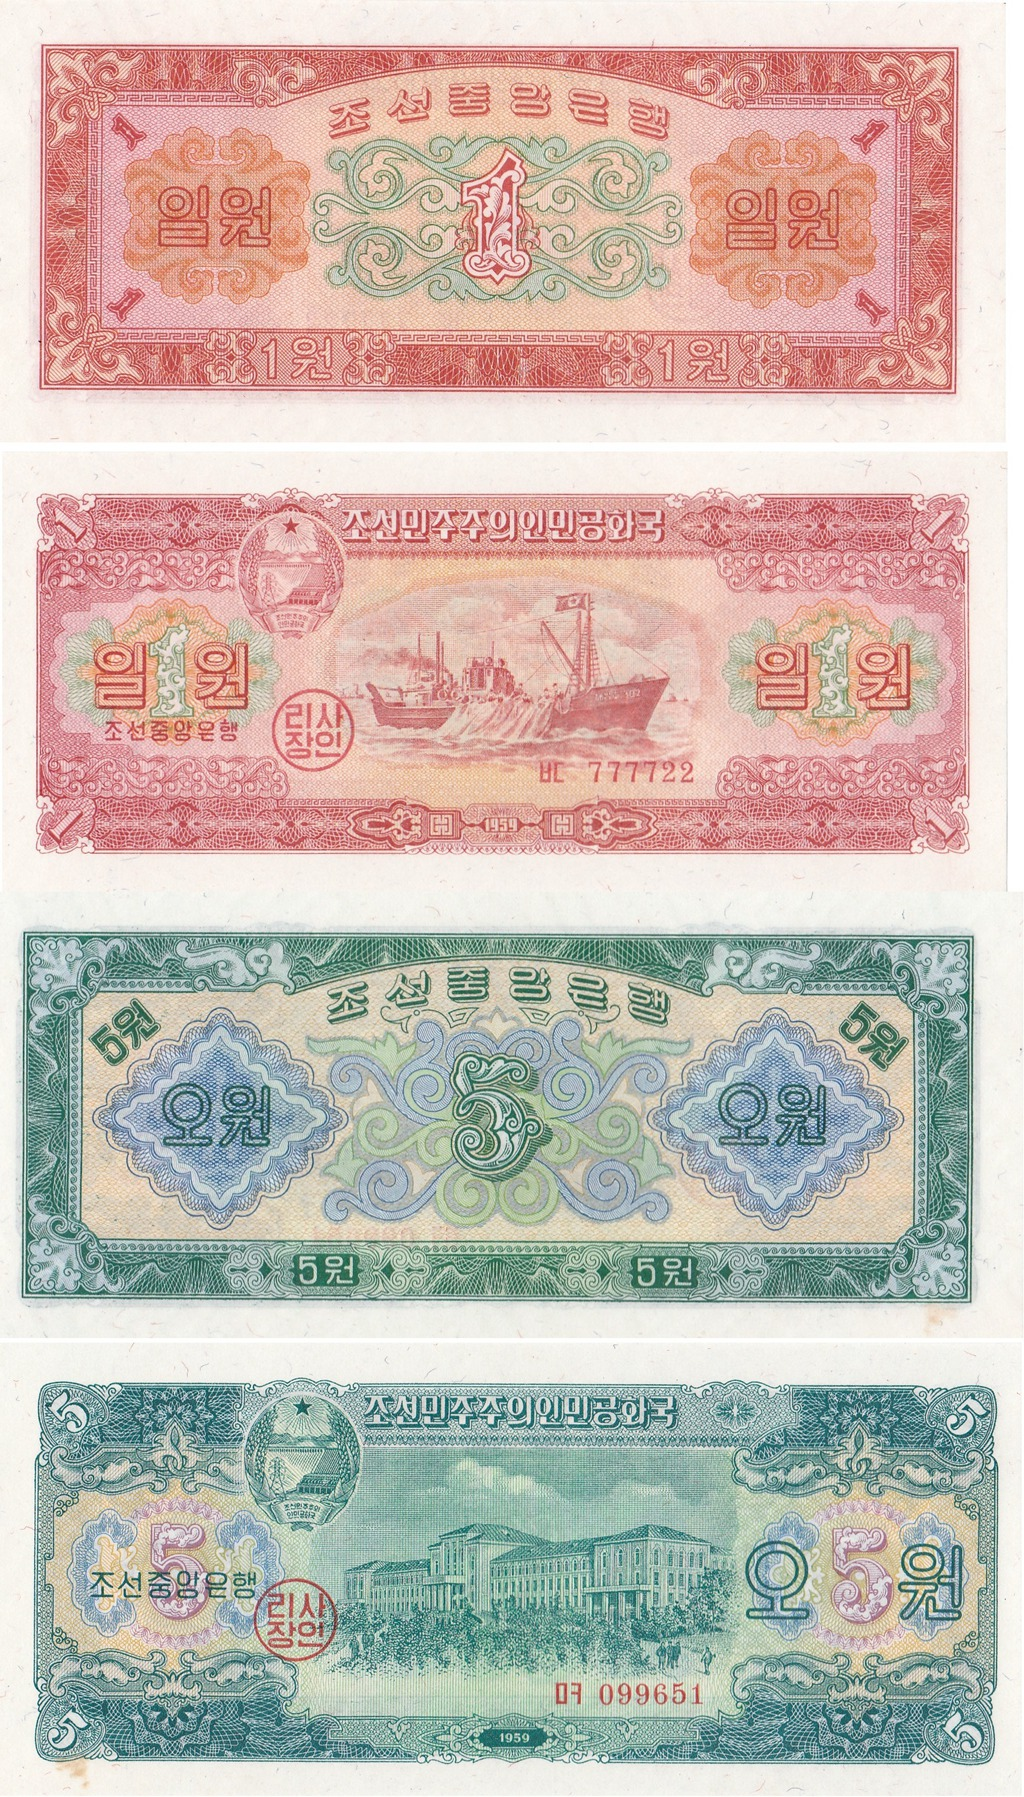 L1055, Korea 1959 Banknote 2 pcs, 1 Won and 5 Won Paper Money, AU